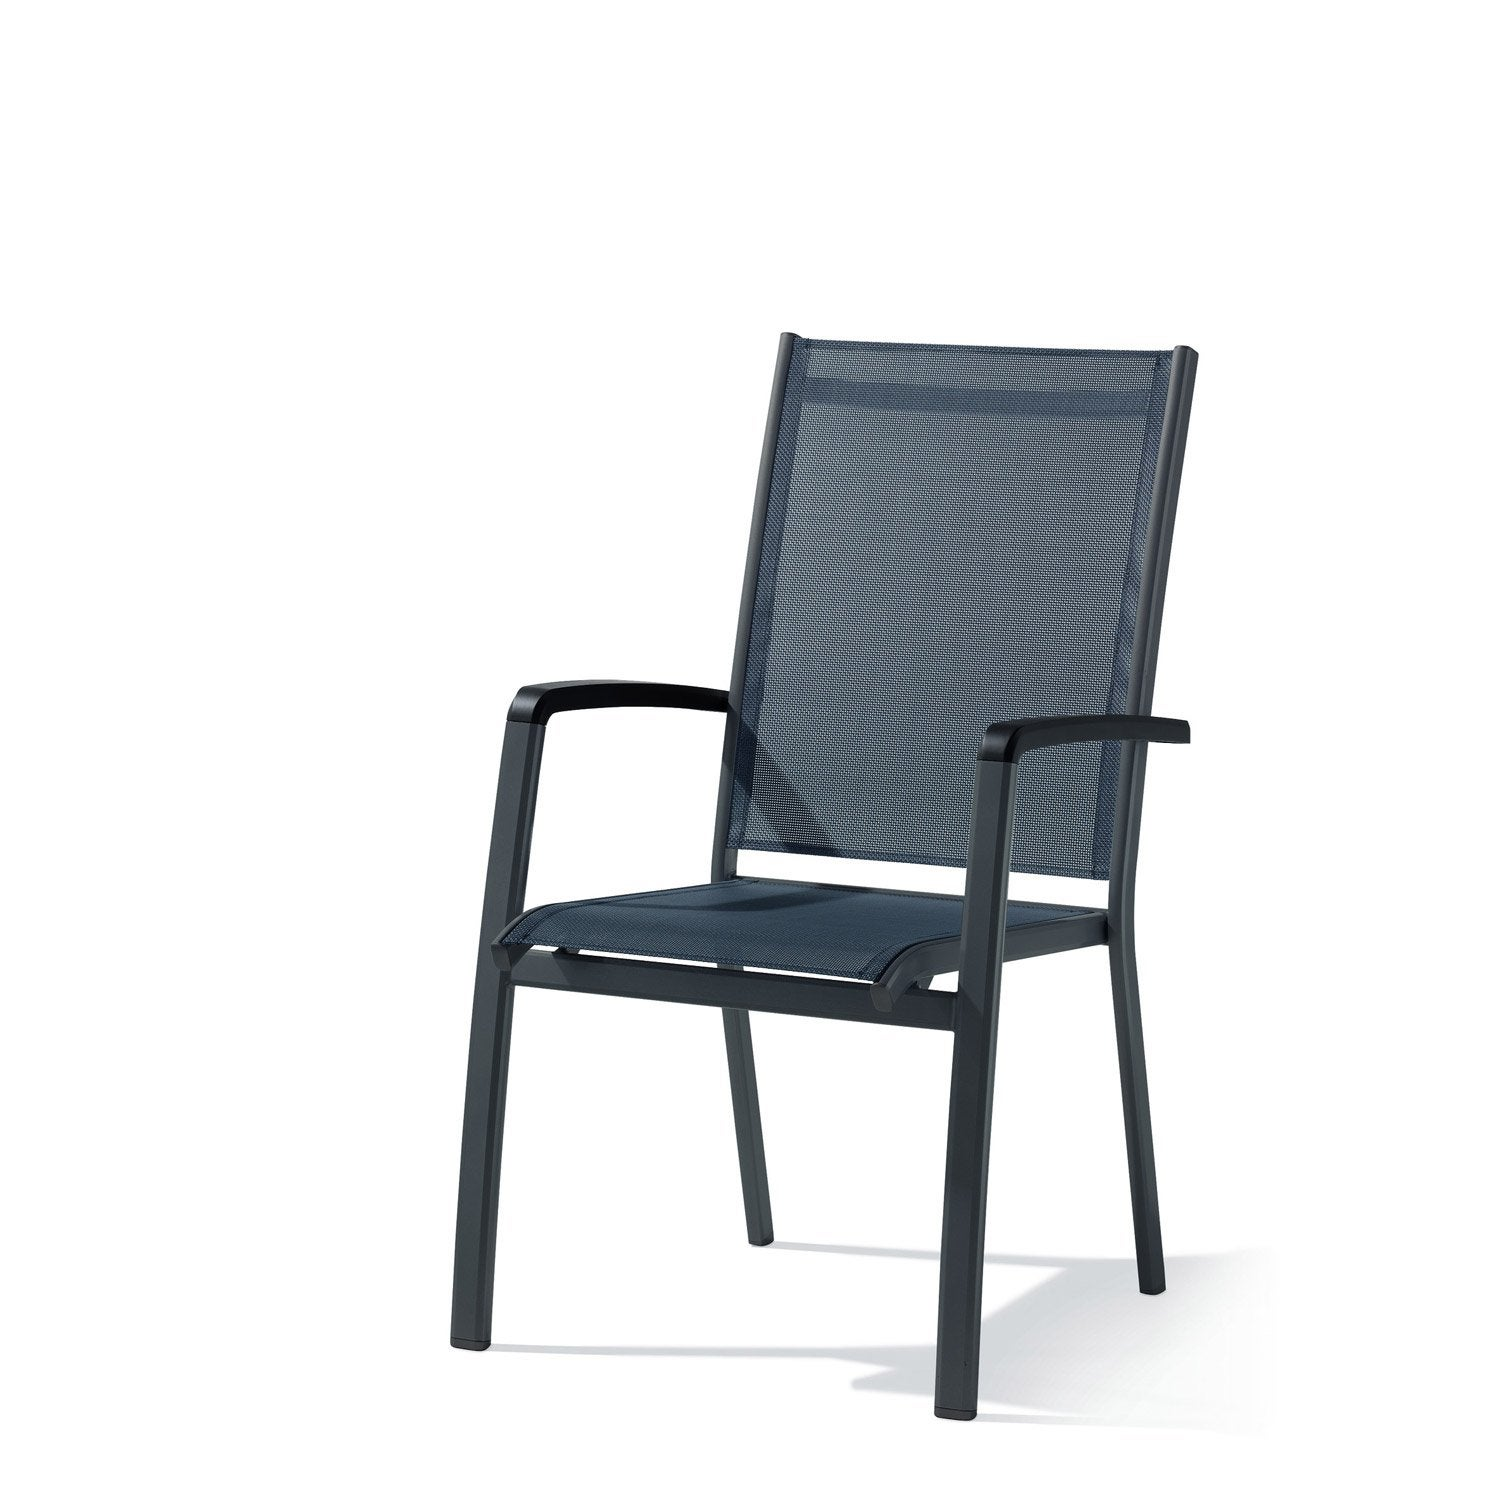 fauteuil de jardin en aluminium bodega gris leroy merlin. Black Bedroom Furniture Sets. Home Design Ideas